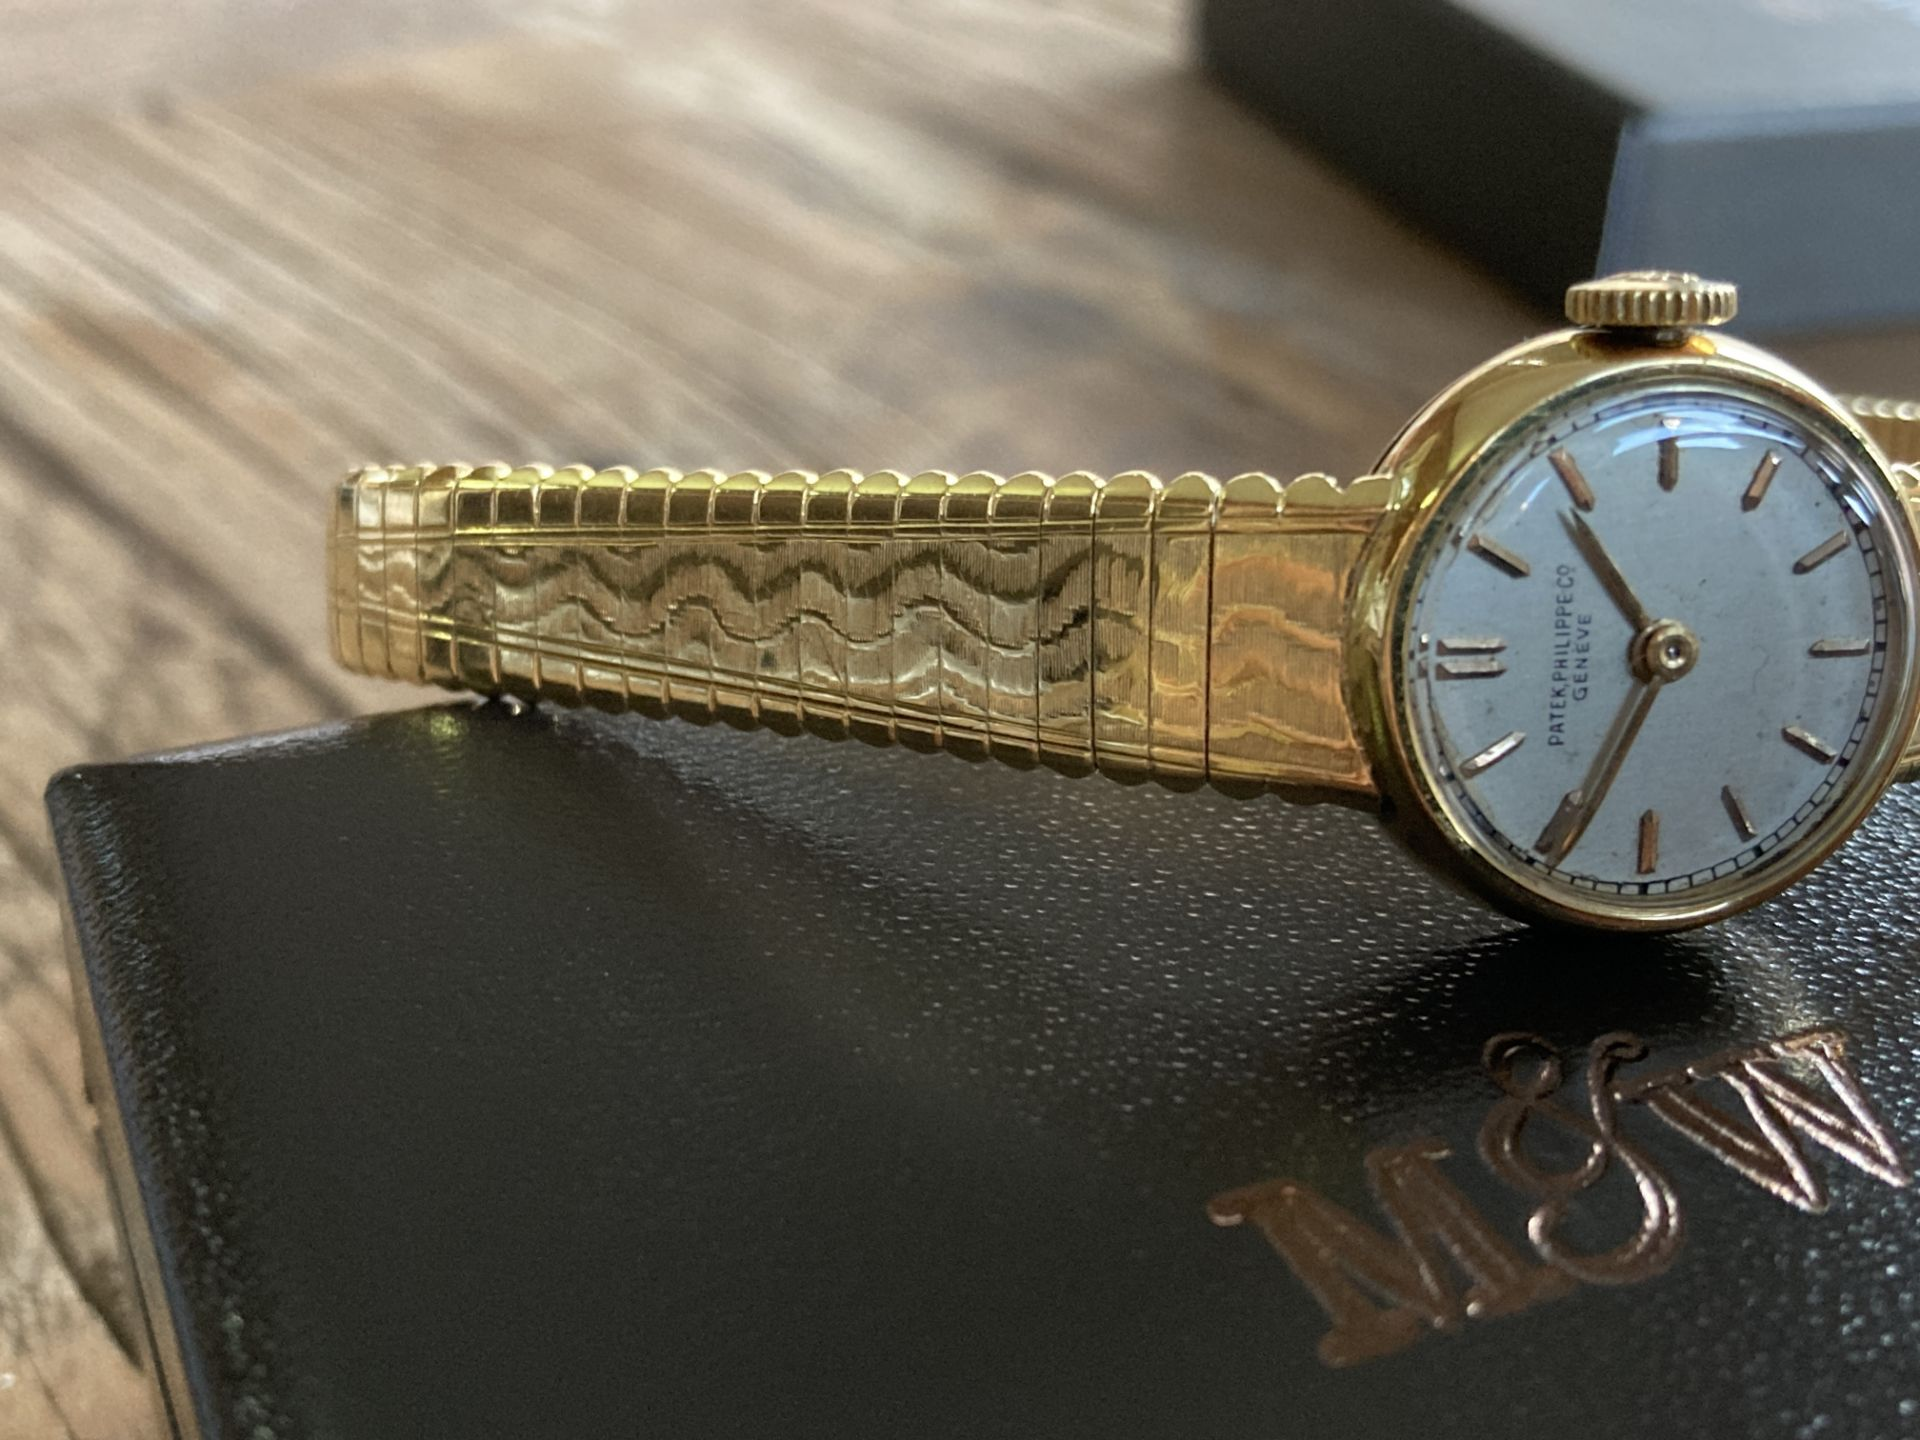 PATEK PHILIPPE 18CT YELLOW GOLD WATCH (WEIGHT: 34.1G) CASE SIZE 20MM APPROX - Image 2 of 6